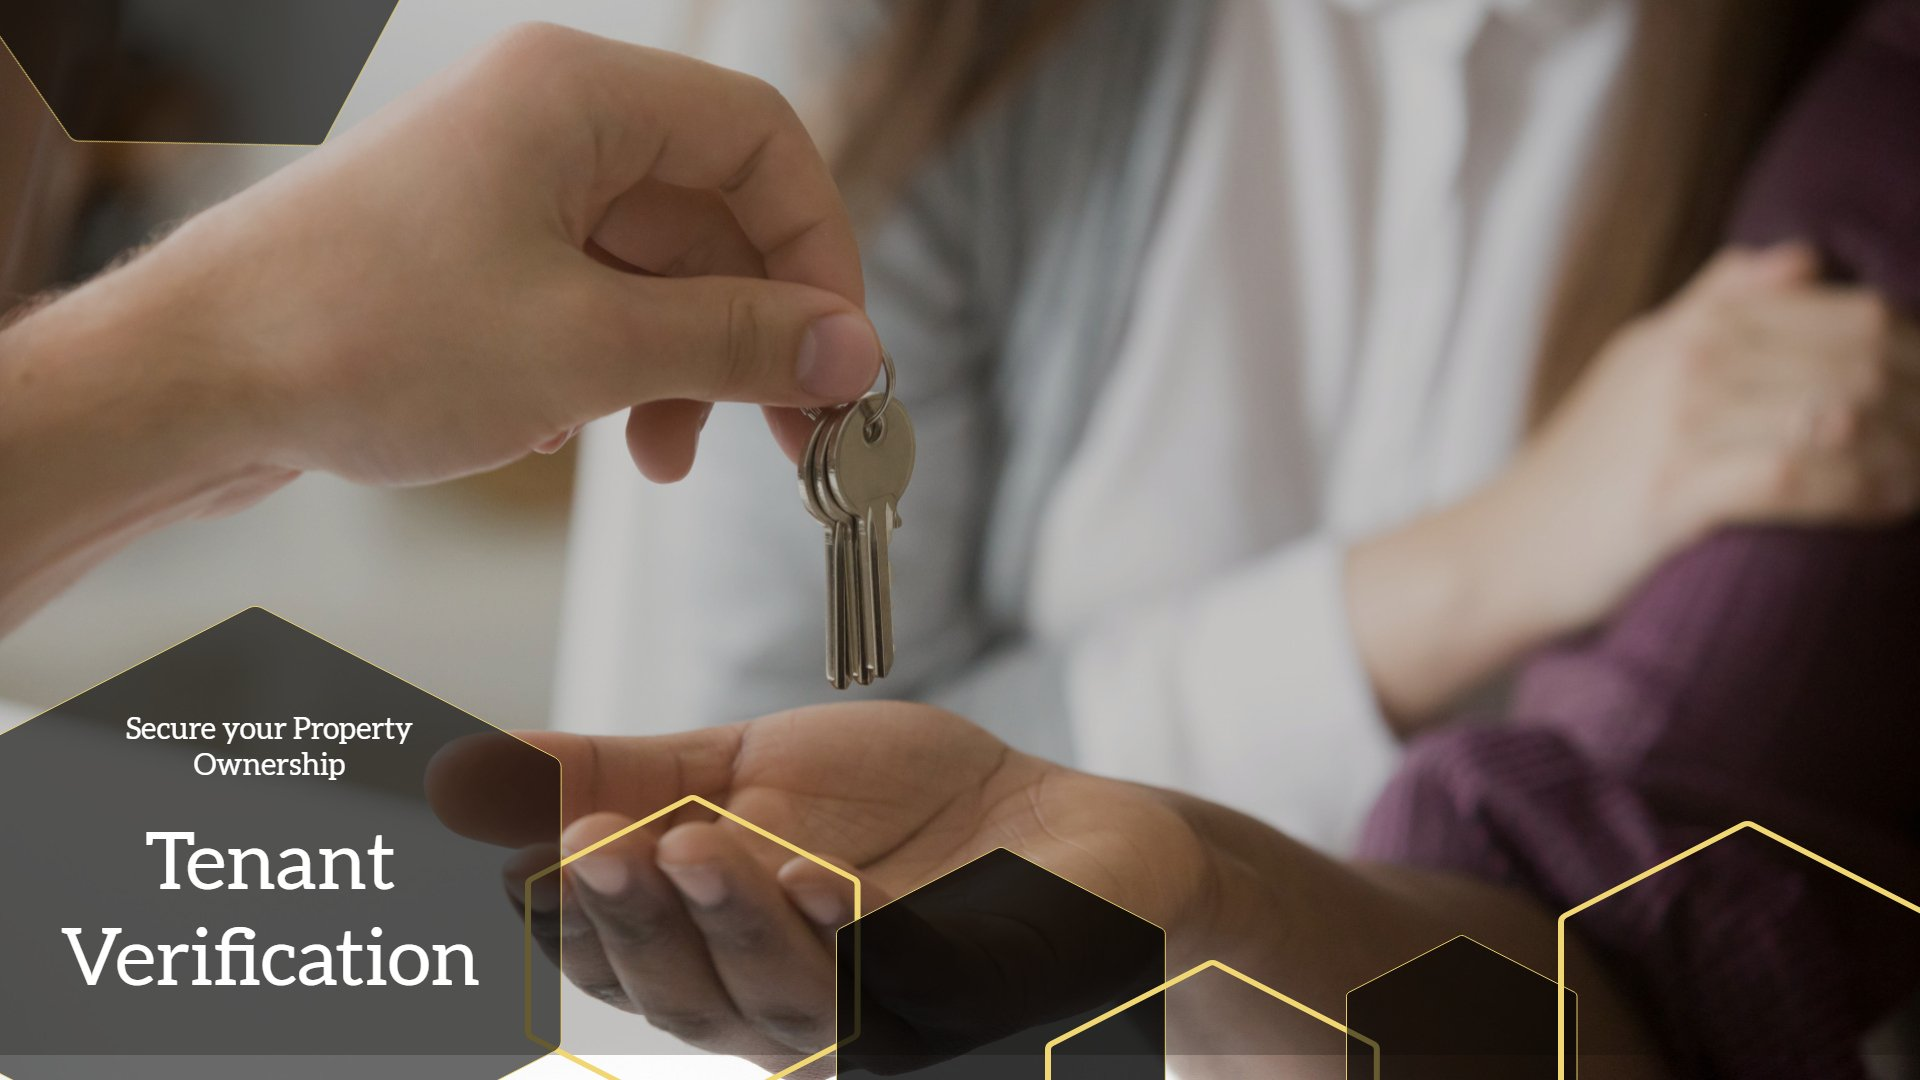 Why A Landlord Requires Tenant Background Verification?